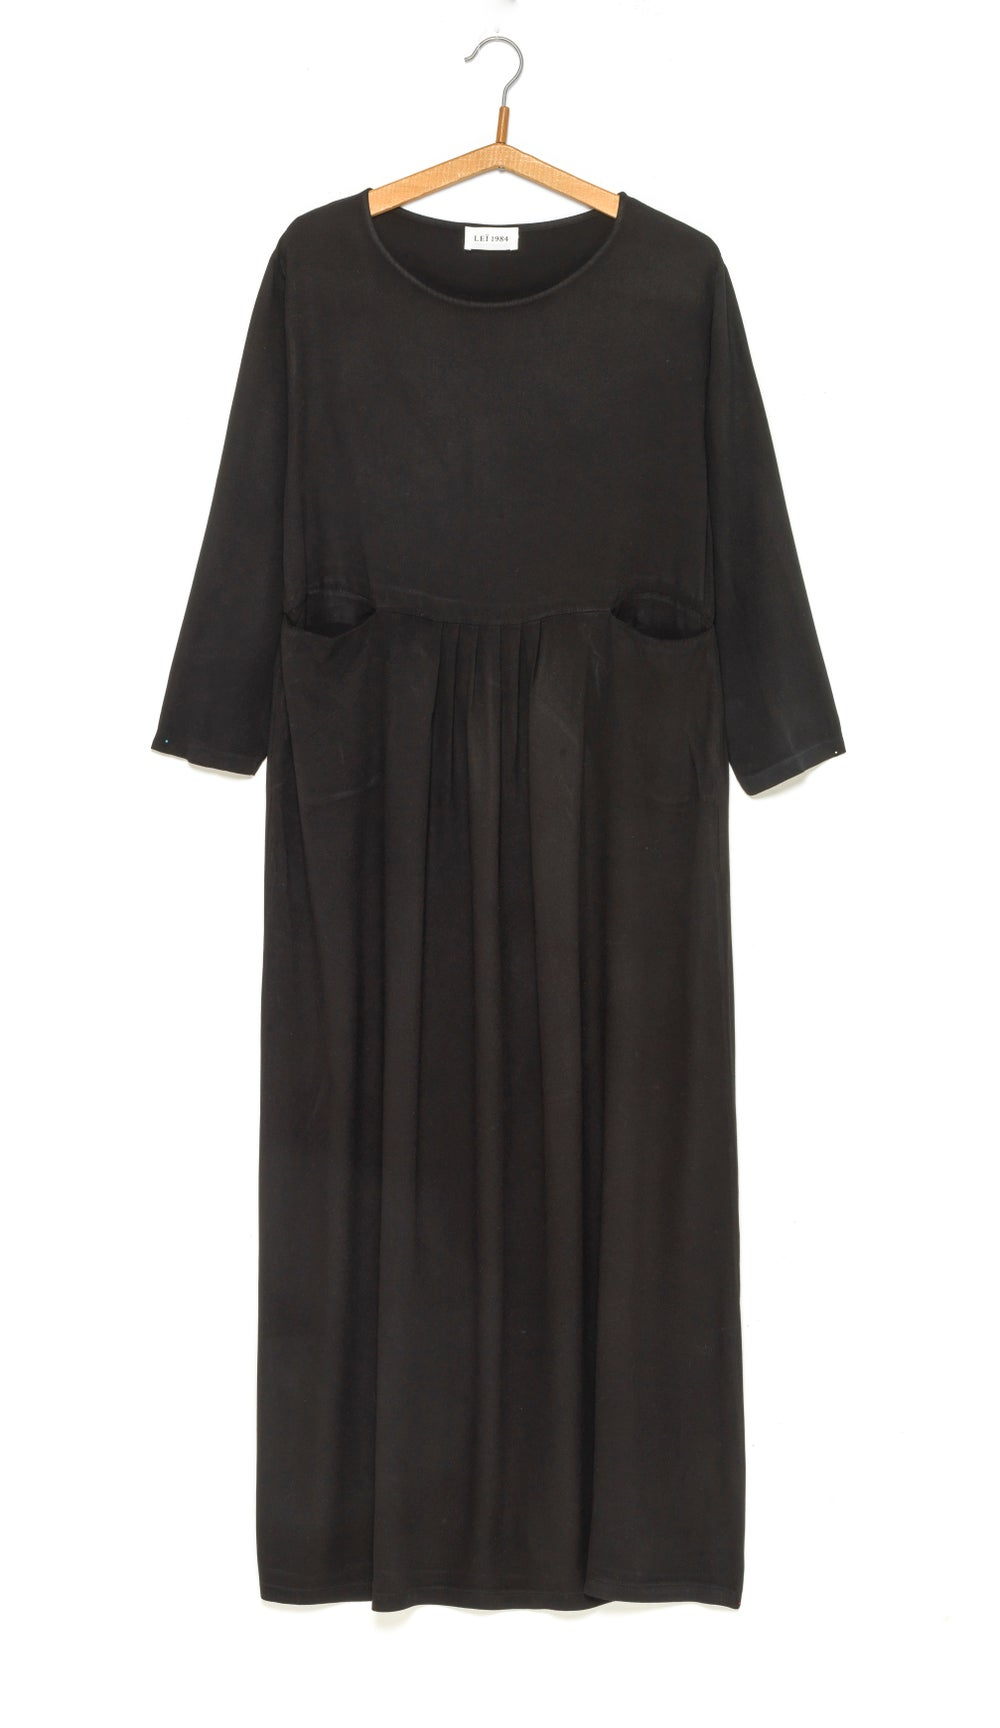 Image of Robe longue Twill viscose LUCIA 149€ -60%